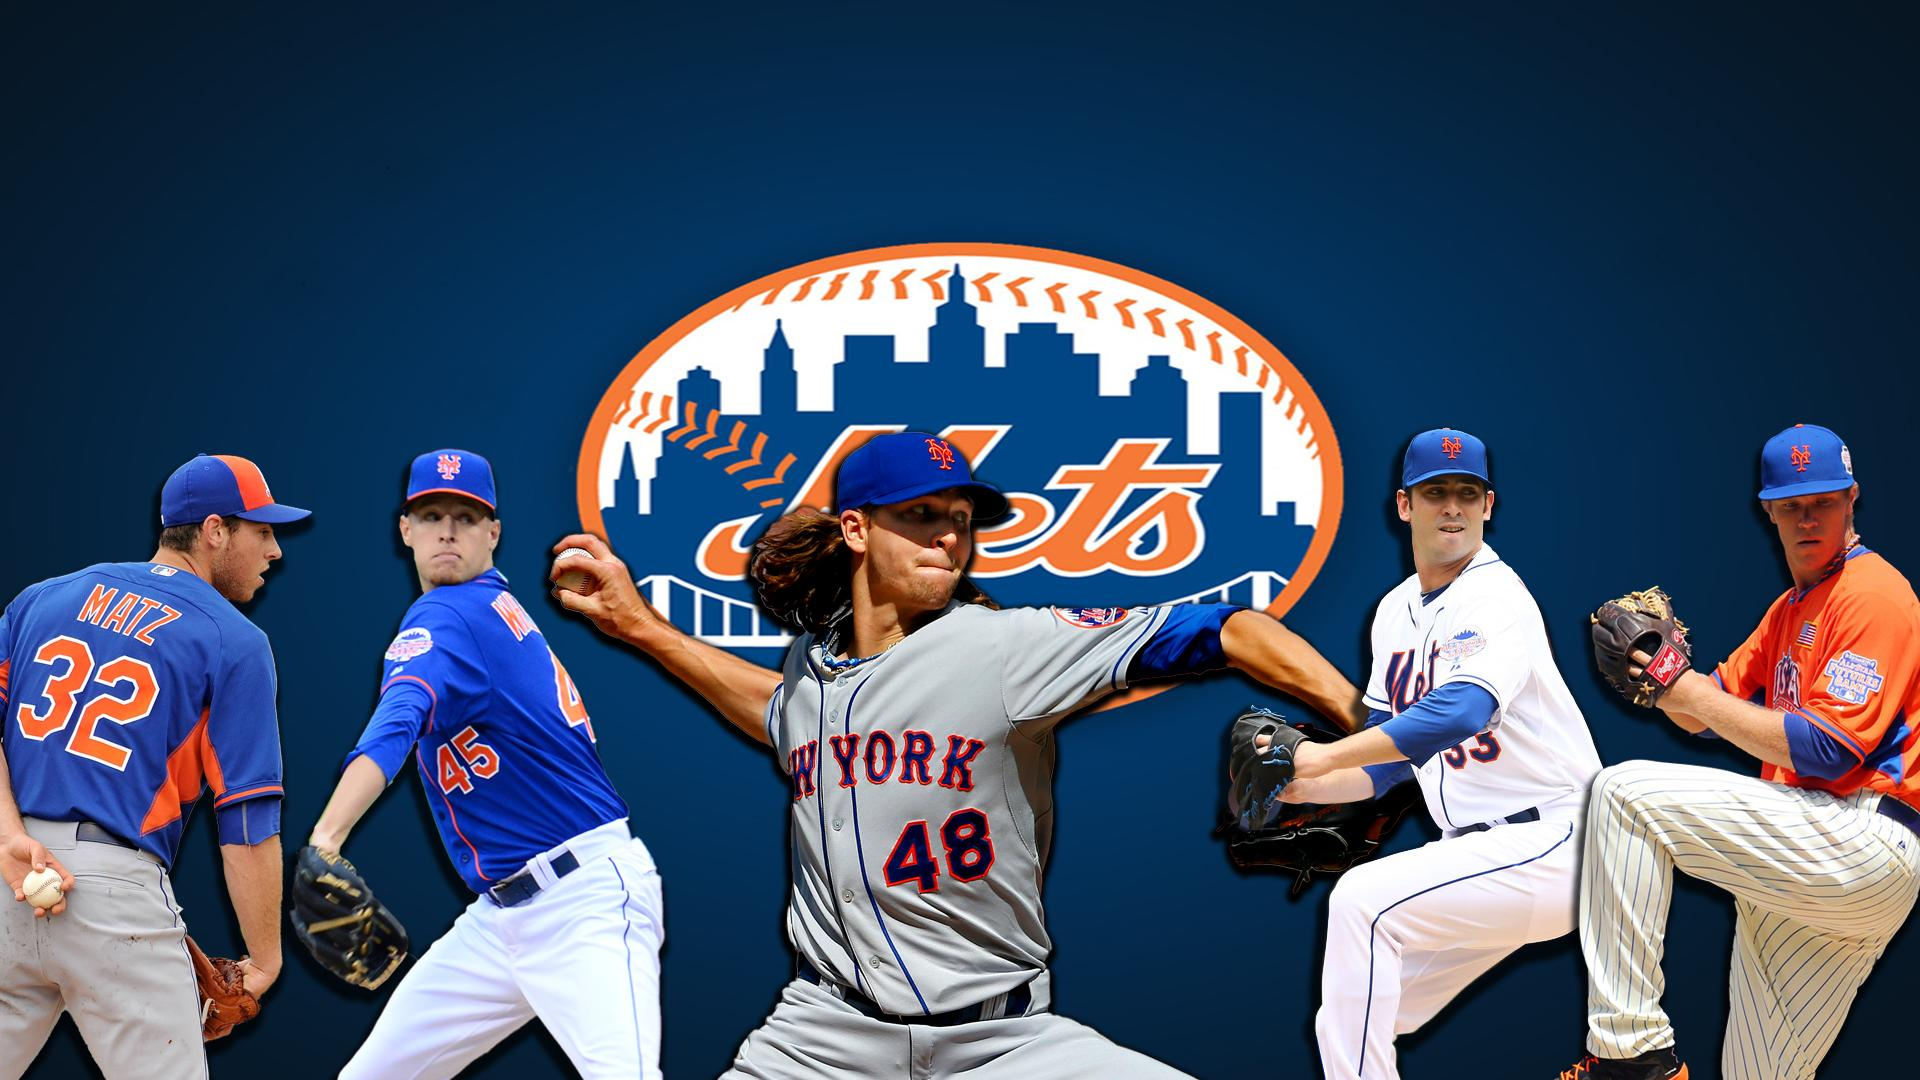 New York Mets Wallpaper Image Group 41 1920x1080